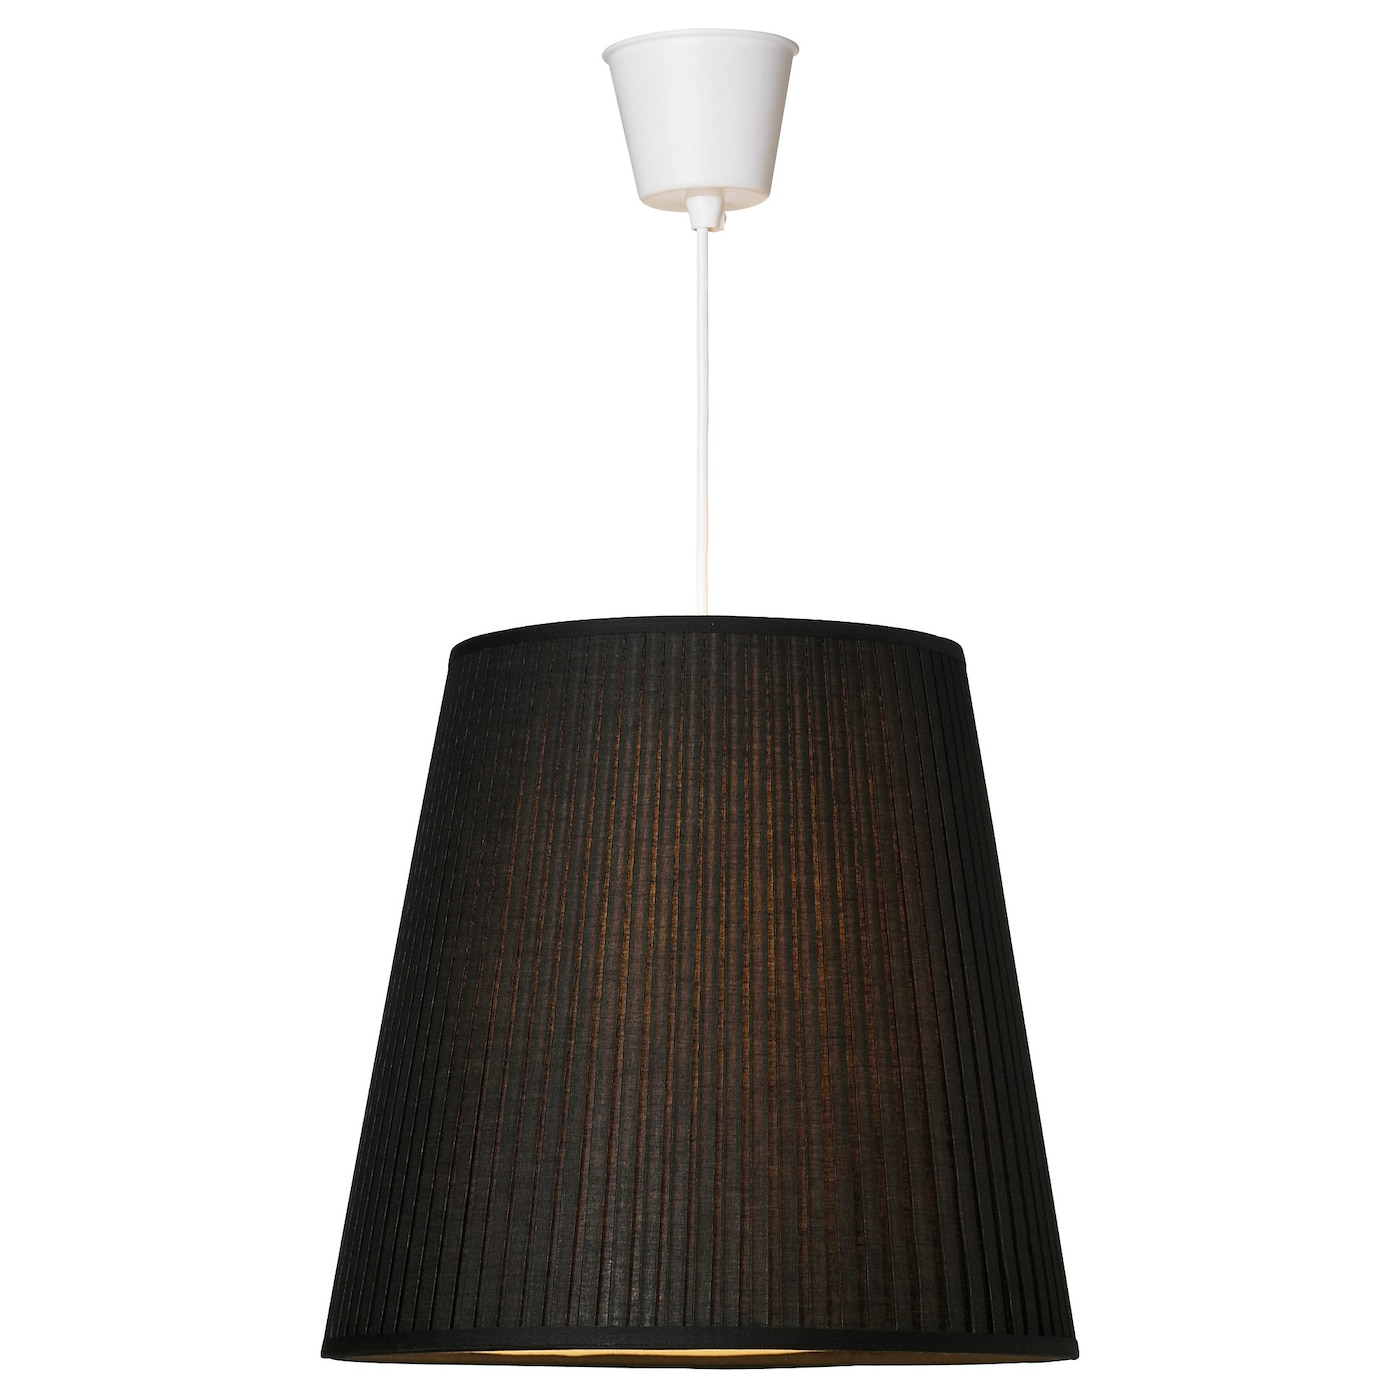 Ek S Lamp Shade Black 34 Cm Ikea